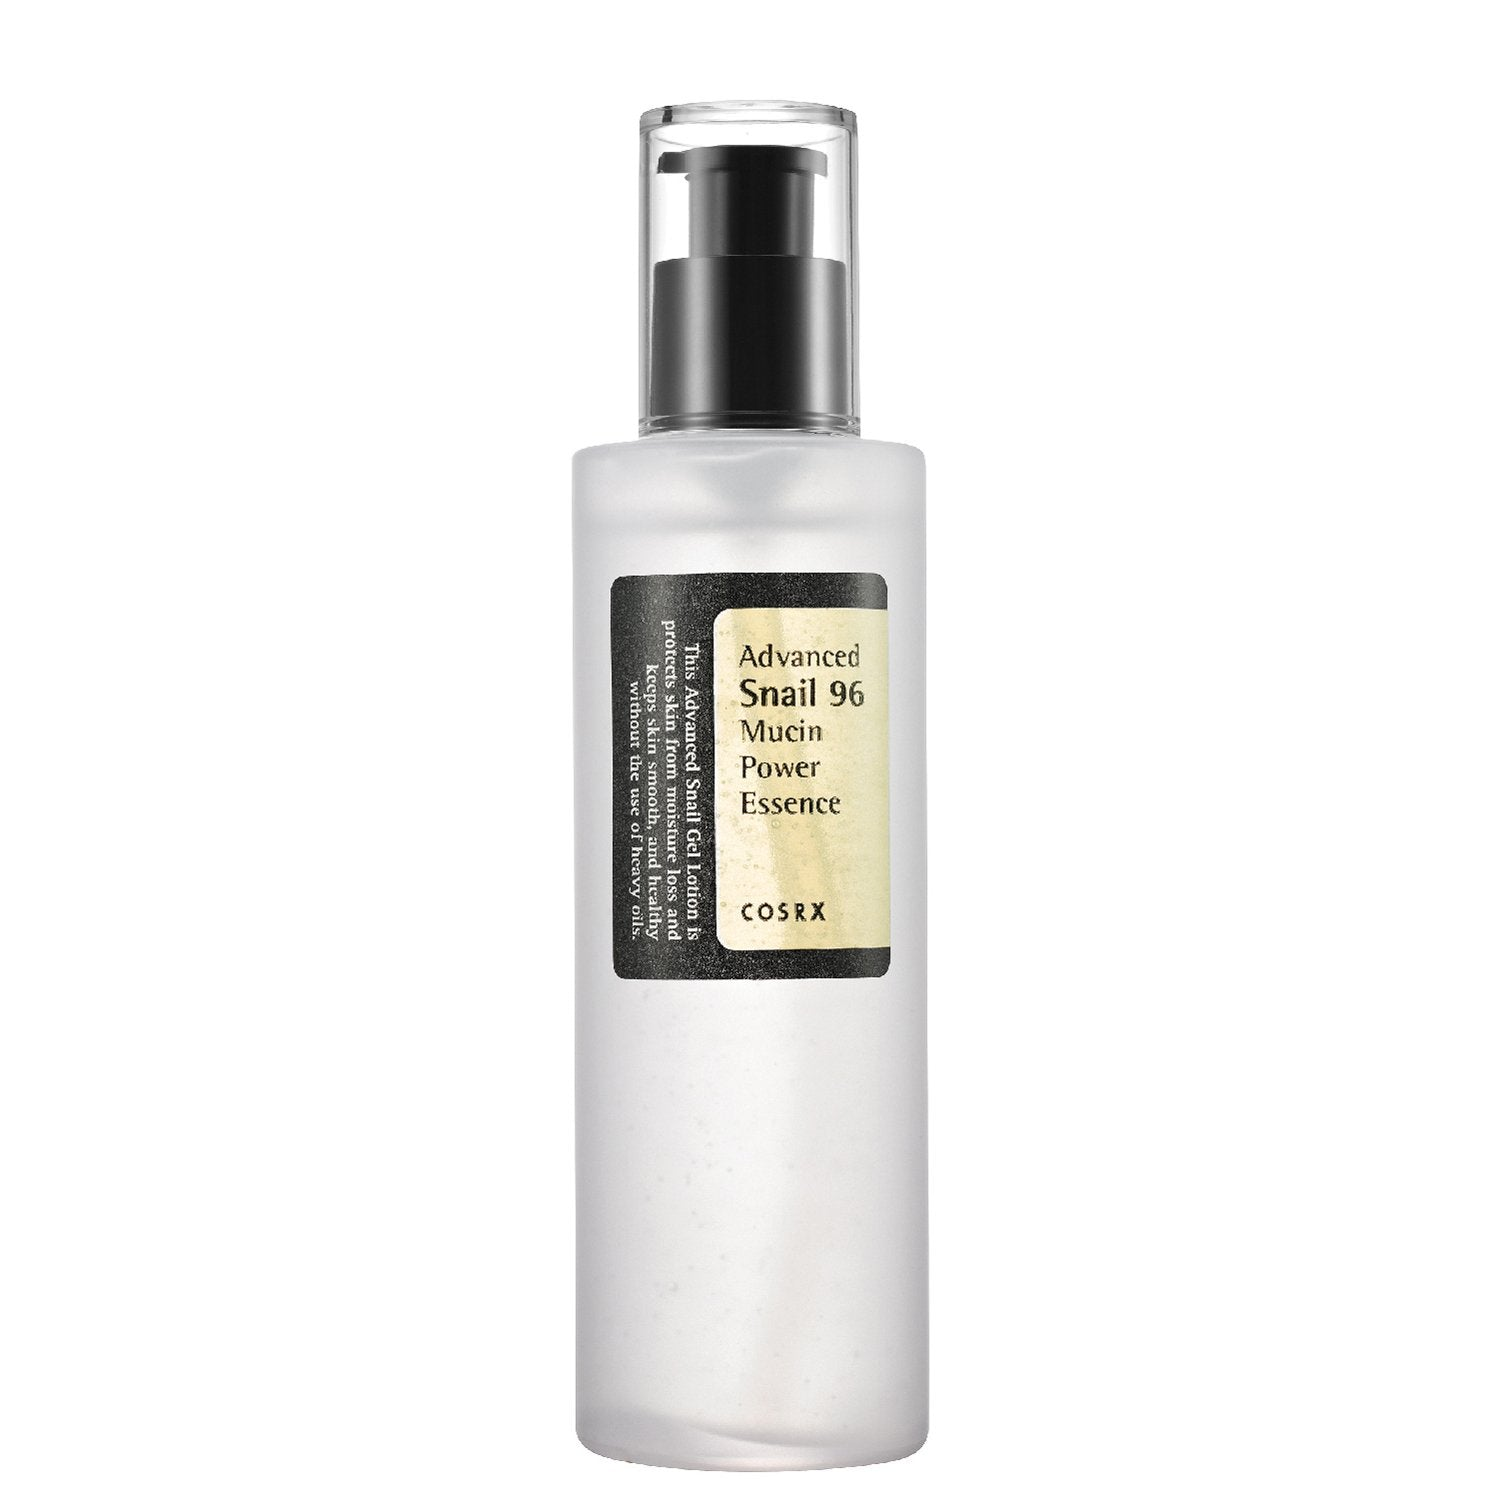 COSRX Advanced Snail 96 Mucin Power Essence (100ml) Essence - Skinspace